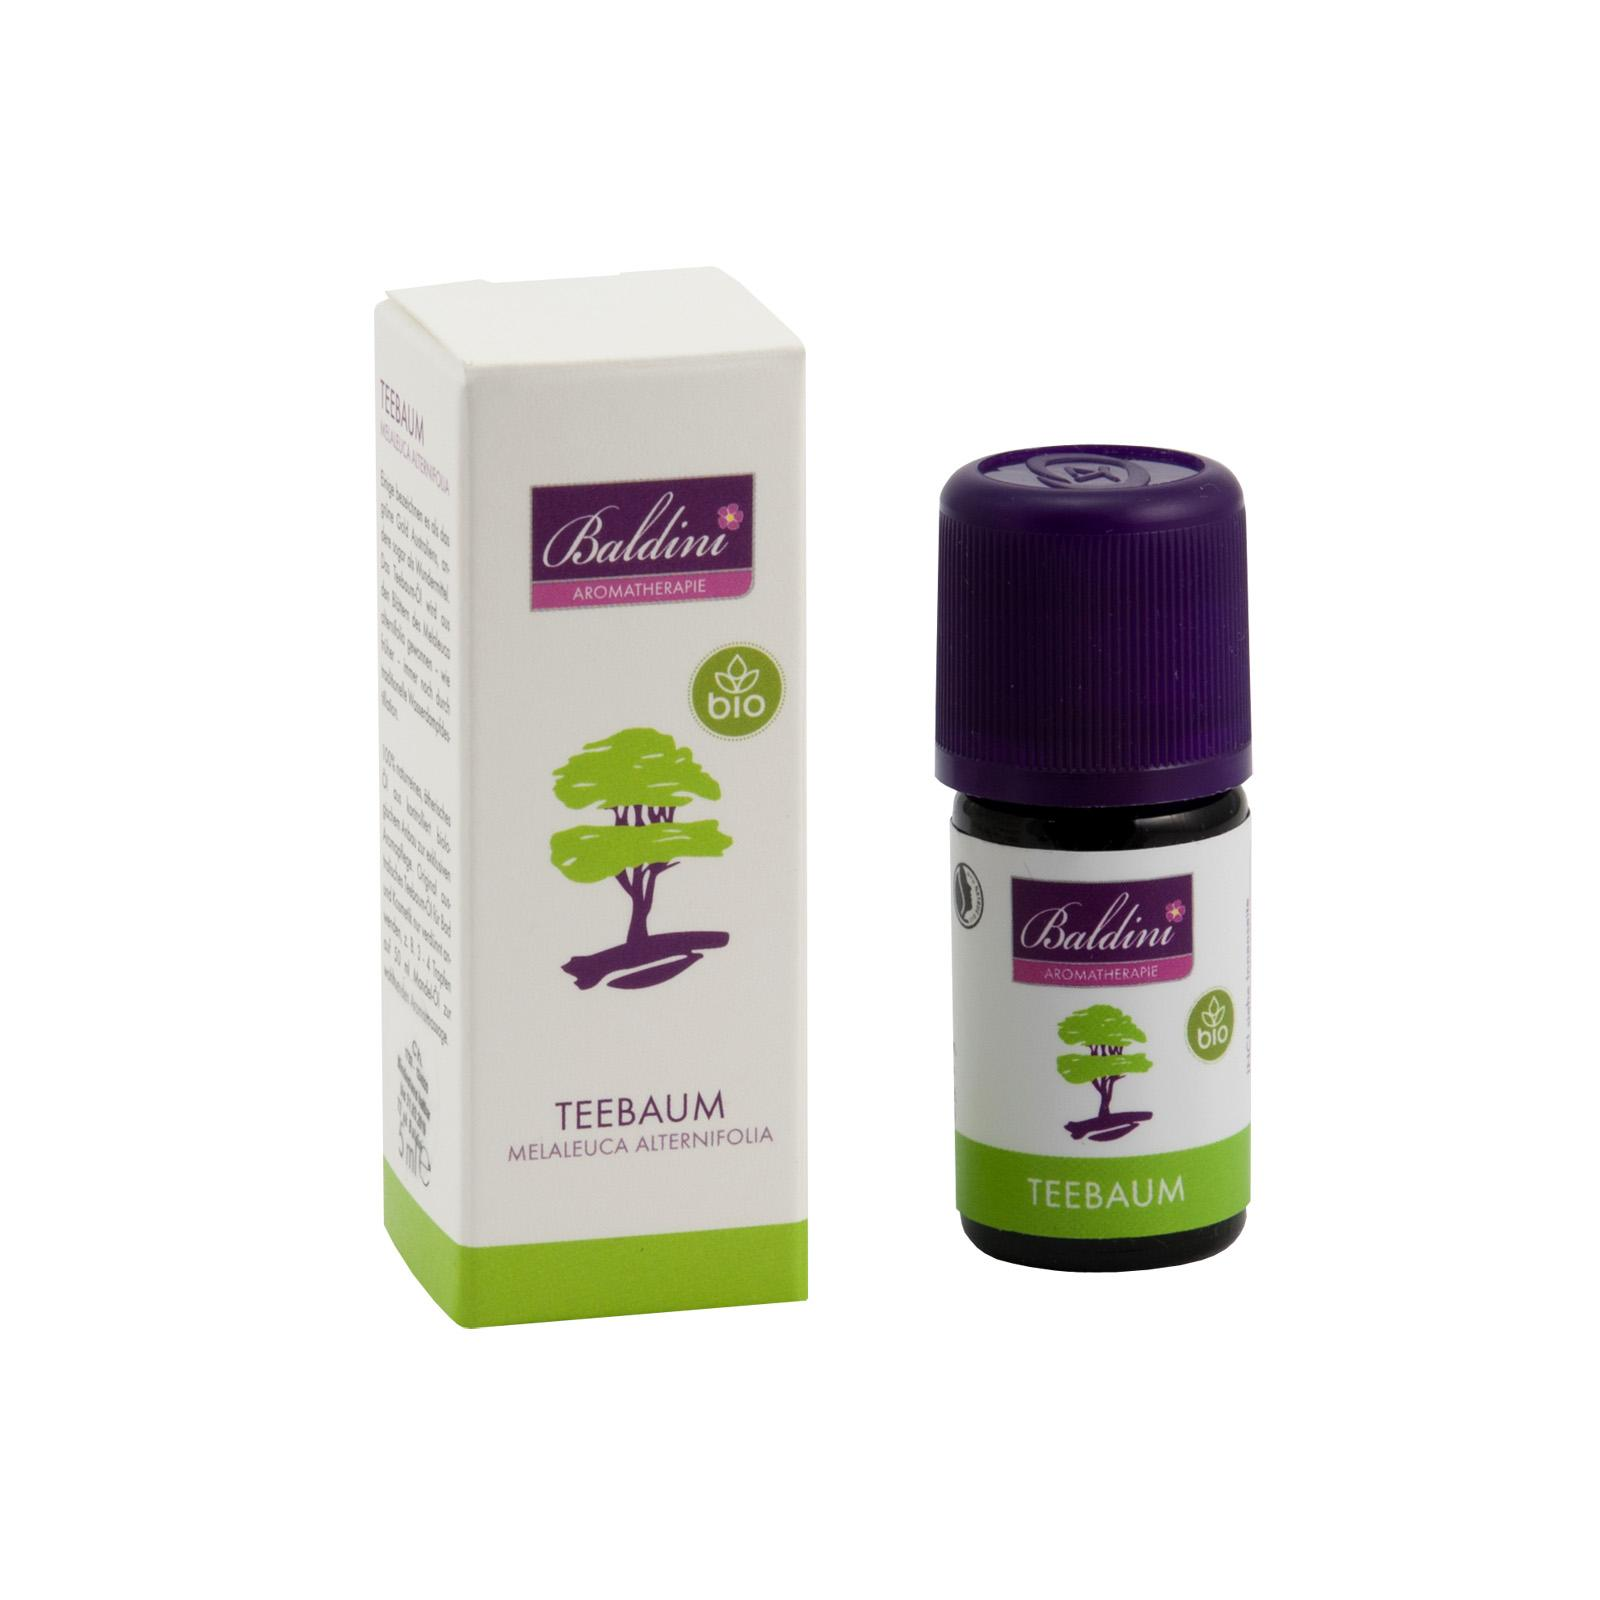 Taoasis Tea tree bio 5 ml, krabička